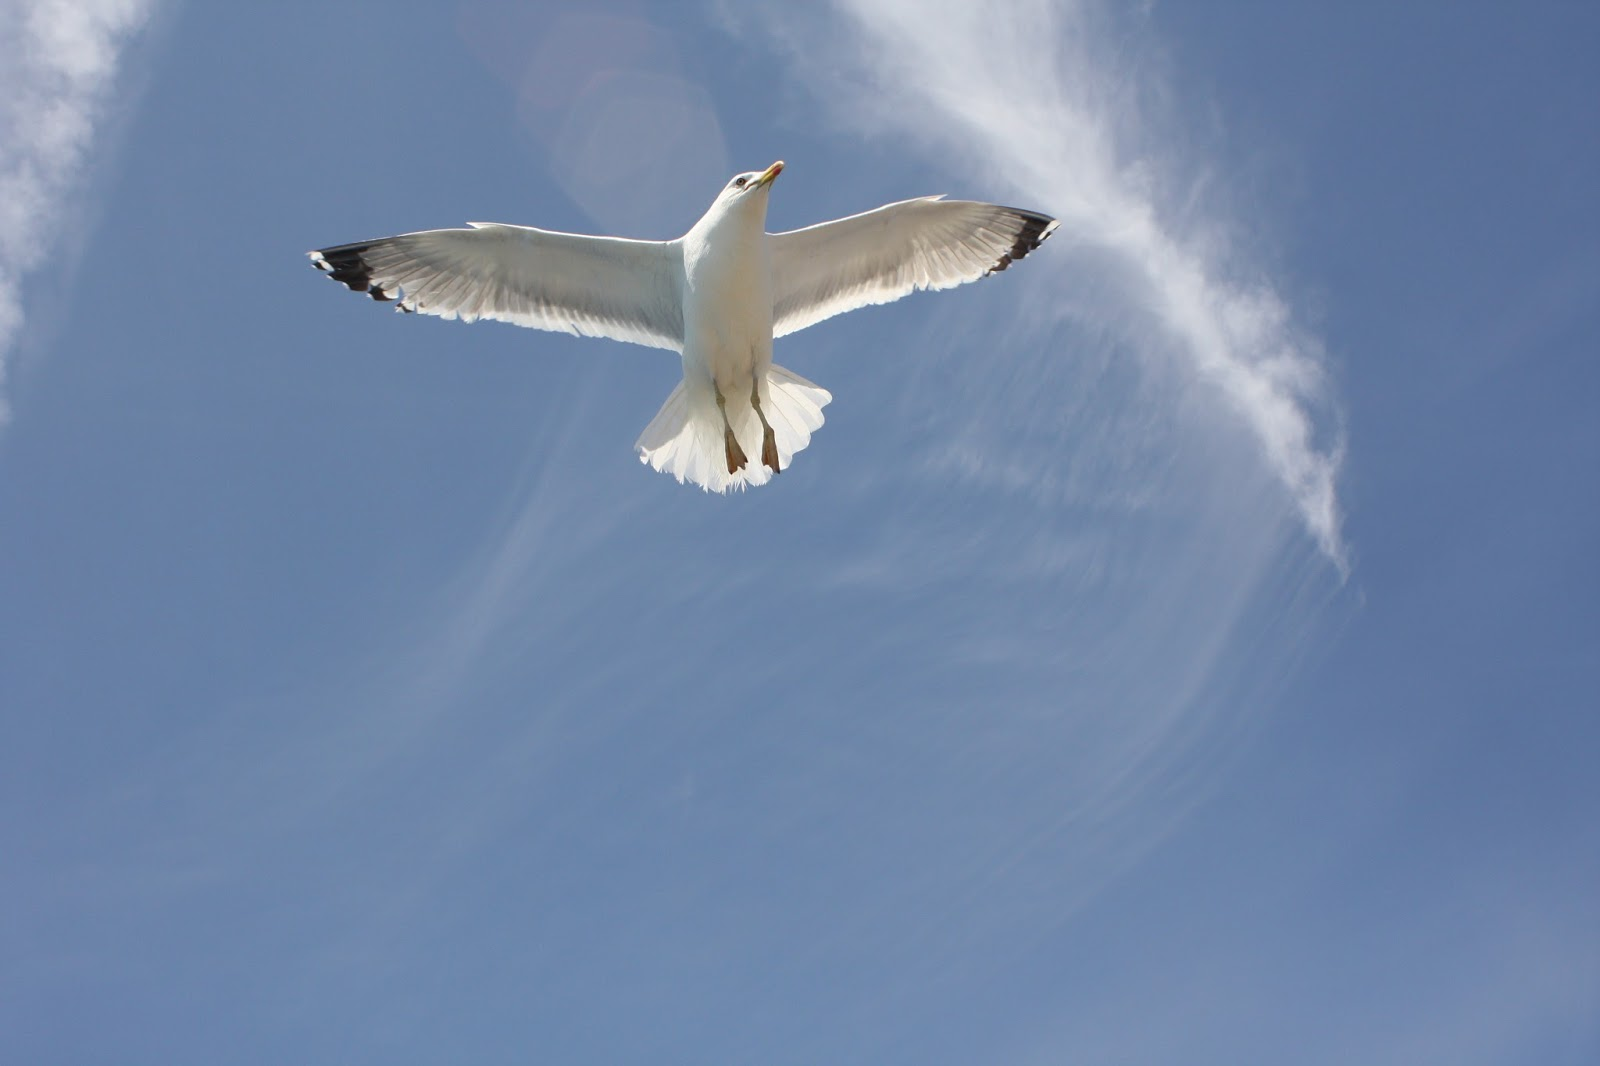 A picture of a bird flying at high attitude.